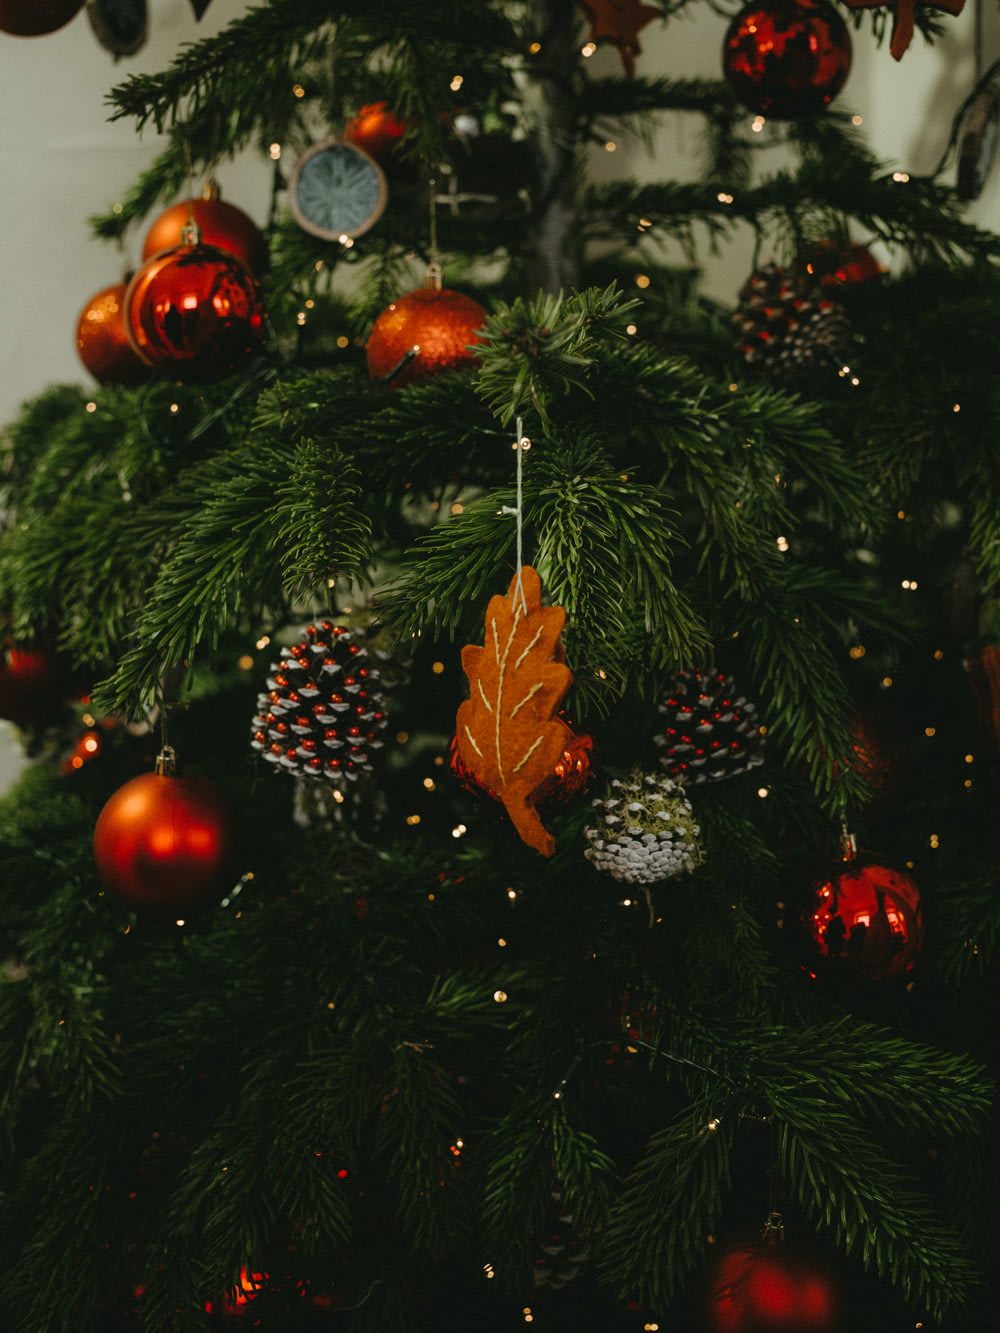 closeup photo of Christmas tree with baubles, pine cones, and string lights